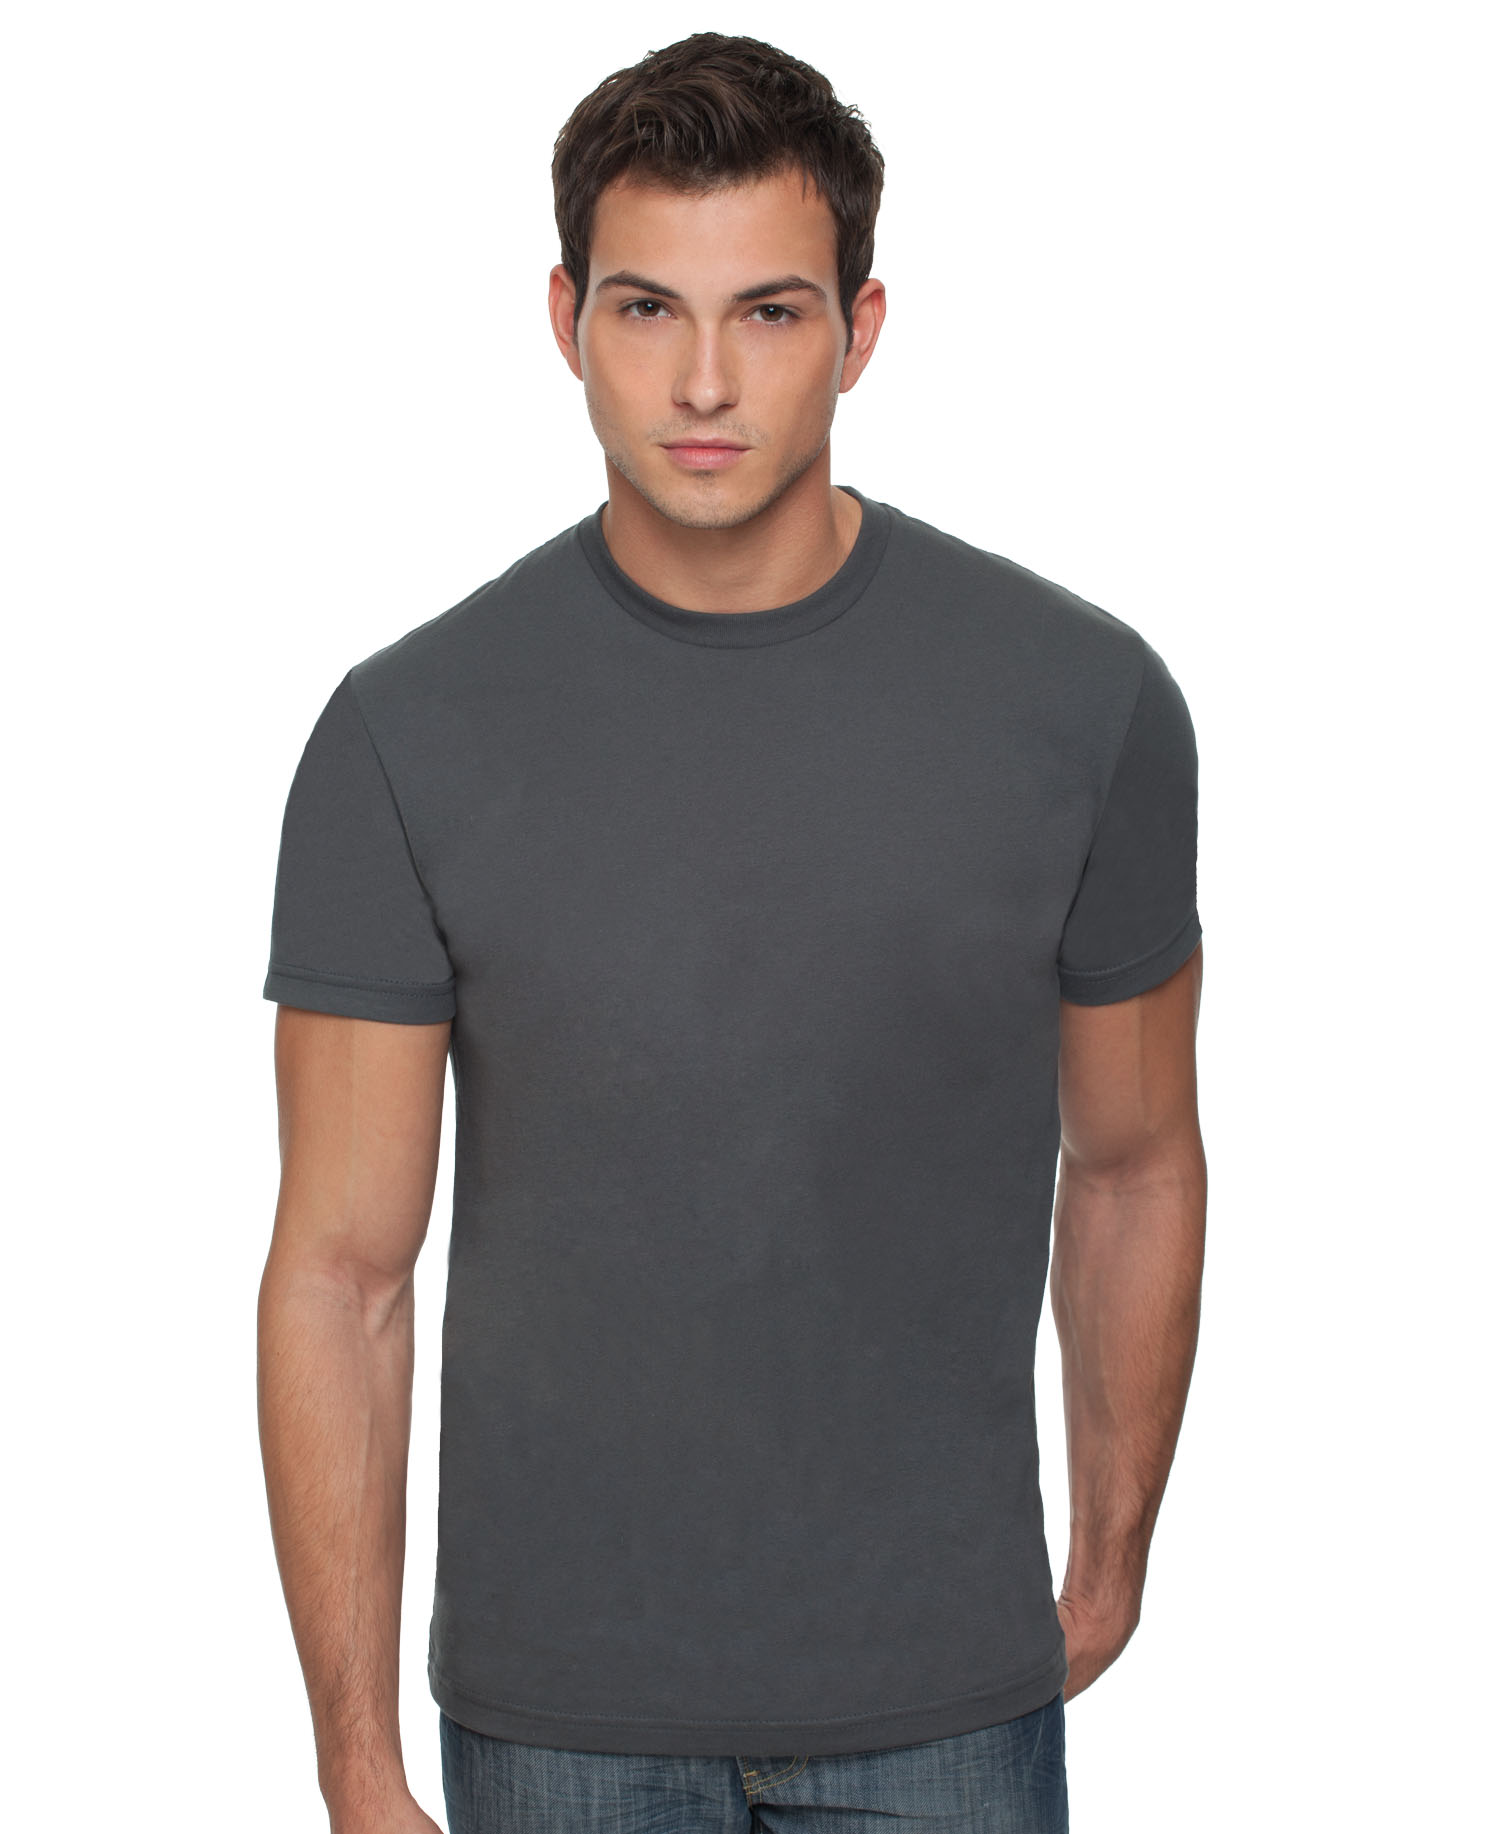 NL3600 / NEXT LEVEL PREMIUM FITTED TEE   4.3 oz. 100% combed cotton jersey  Set in collar 1x1 baby rib Tear away label       COLOR OPTIONS